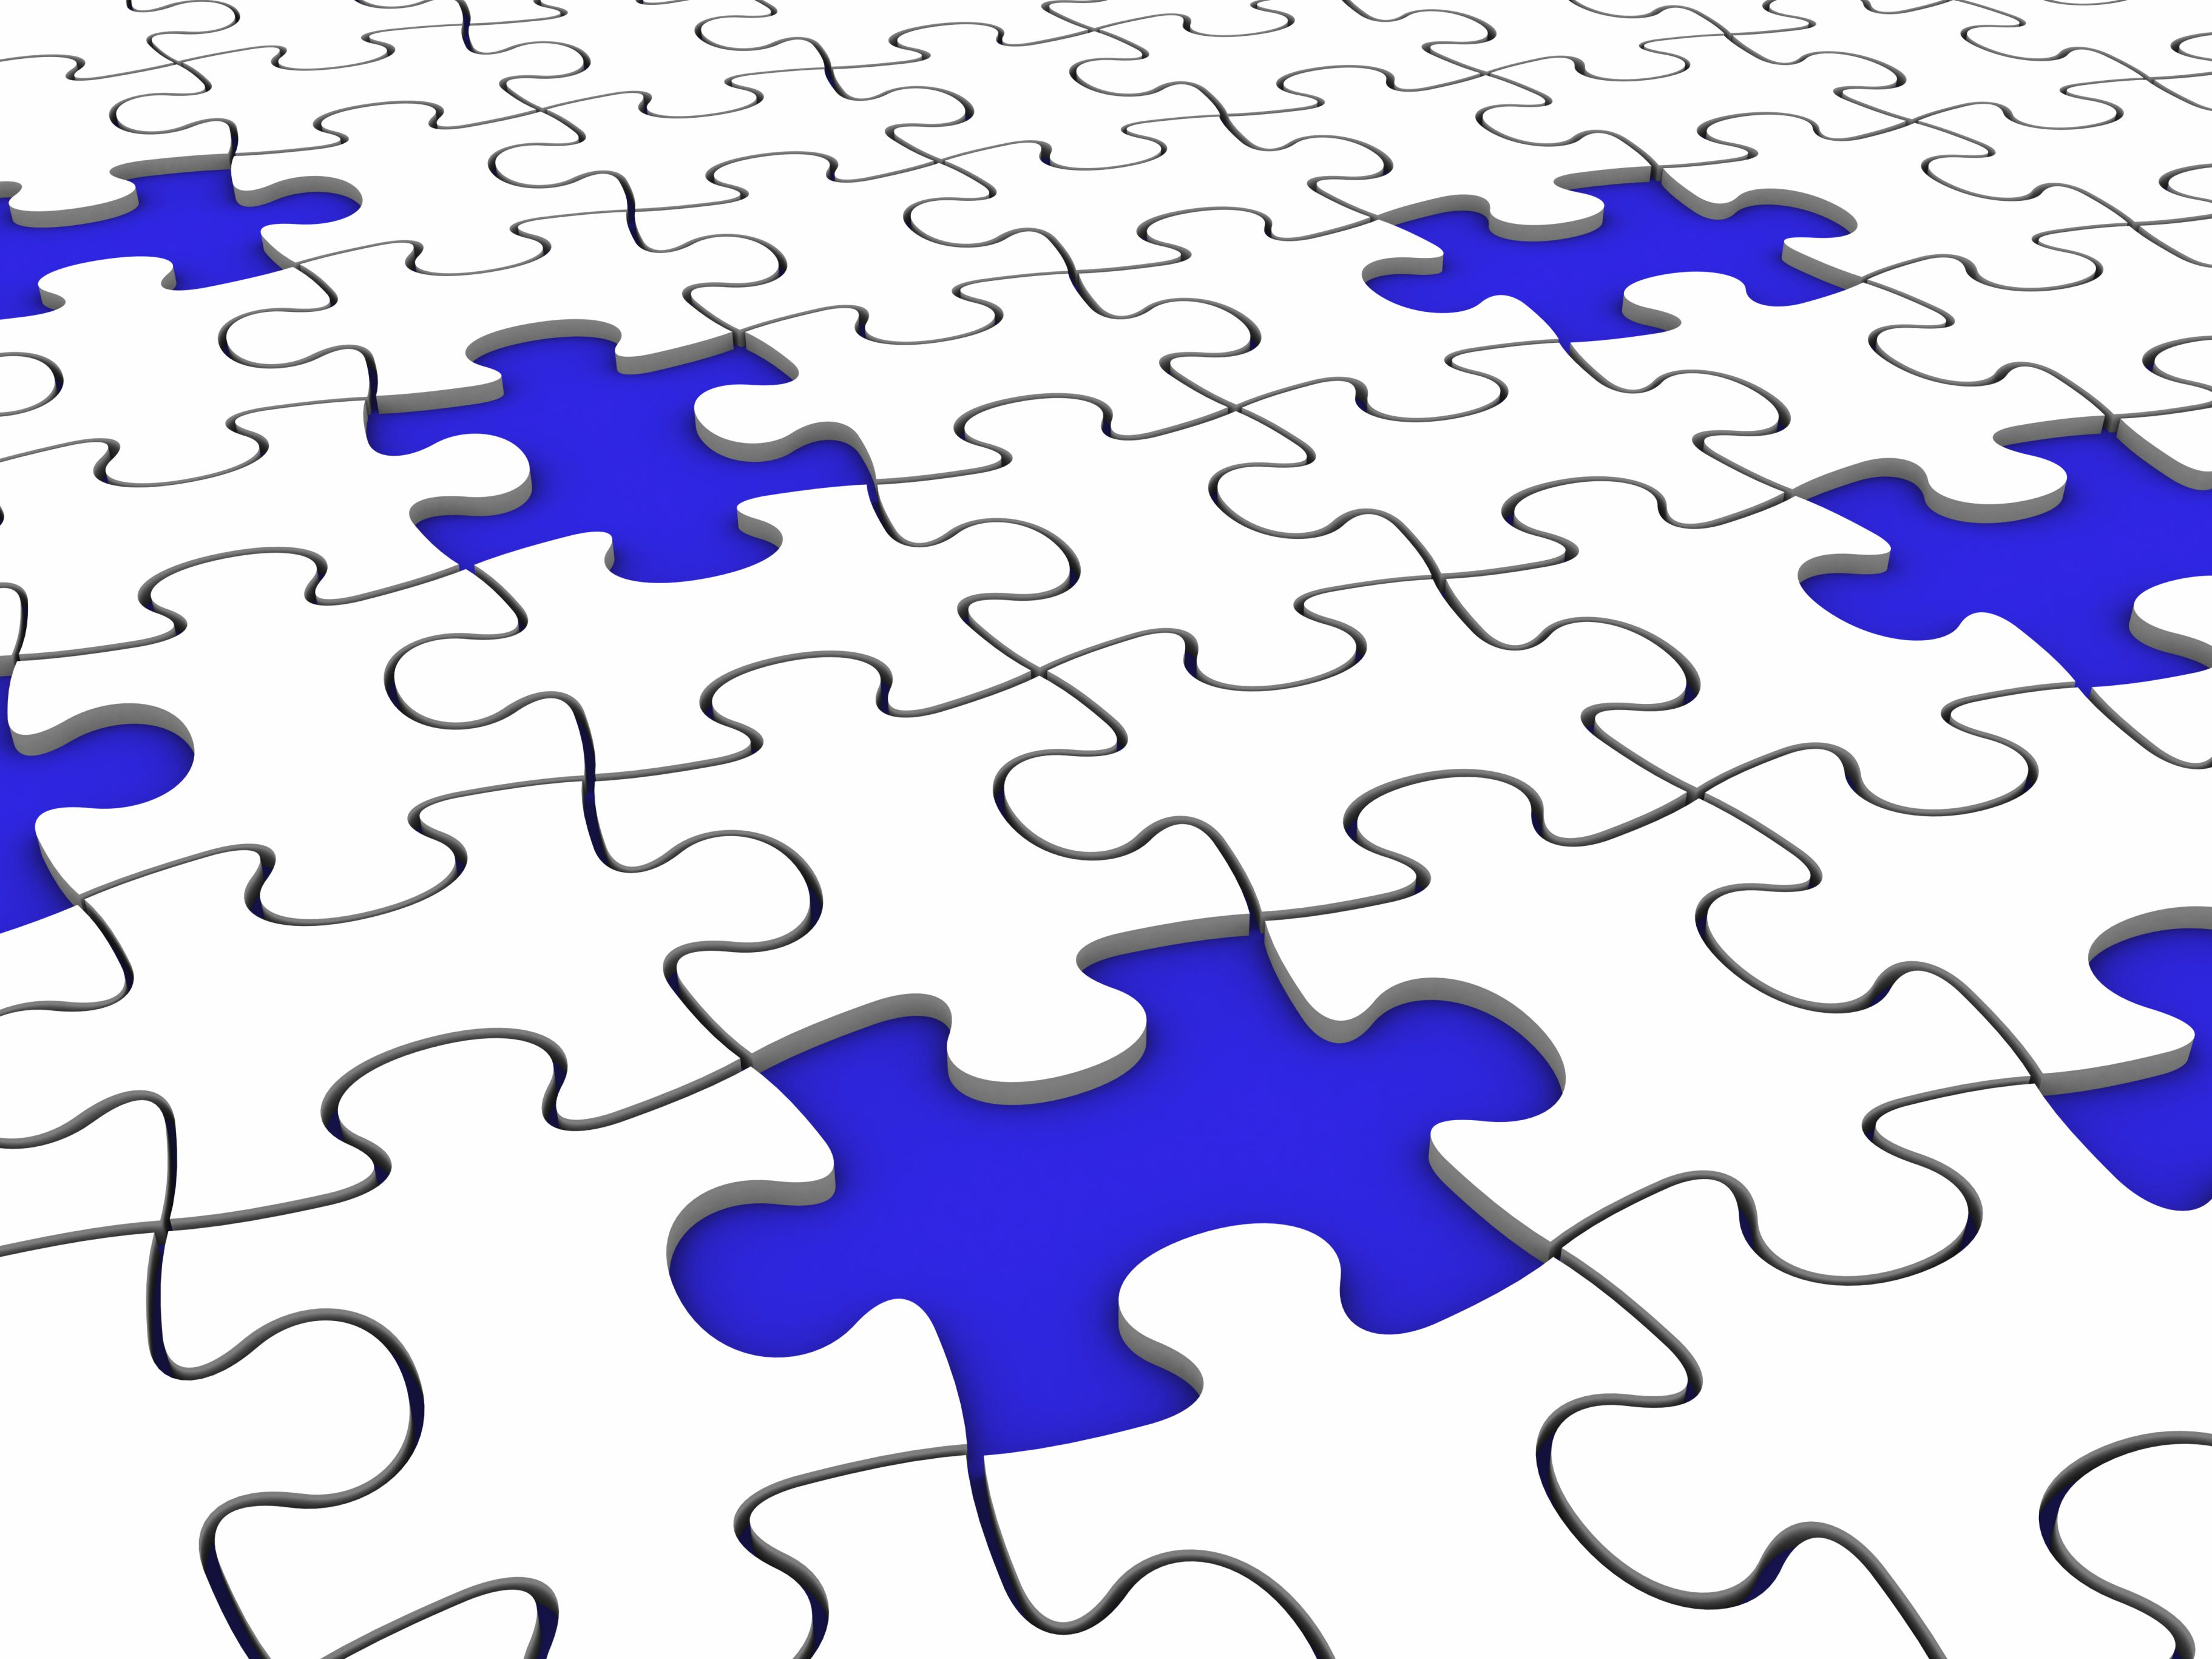 Terabytes gigabytes petabytes how big are they picture of a puzzle with missing pieces nvjuhfo Image collections